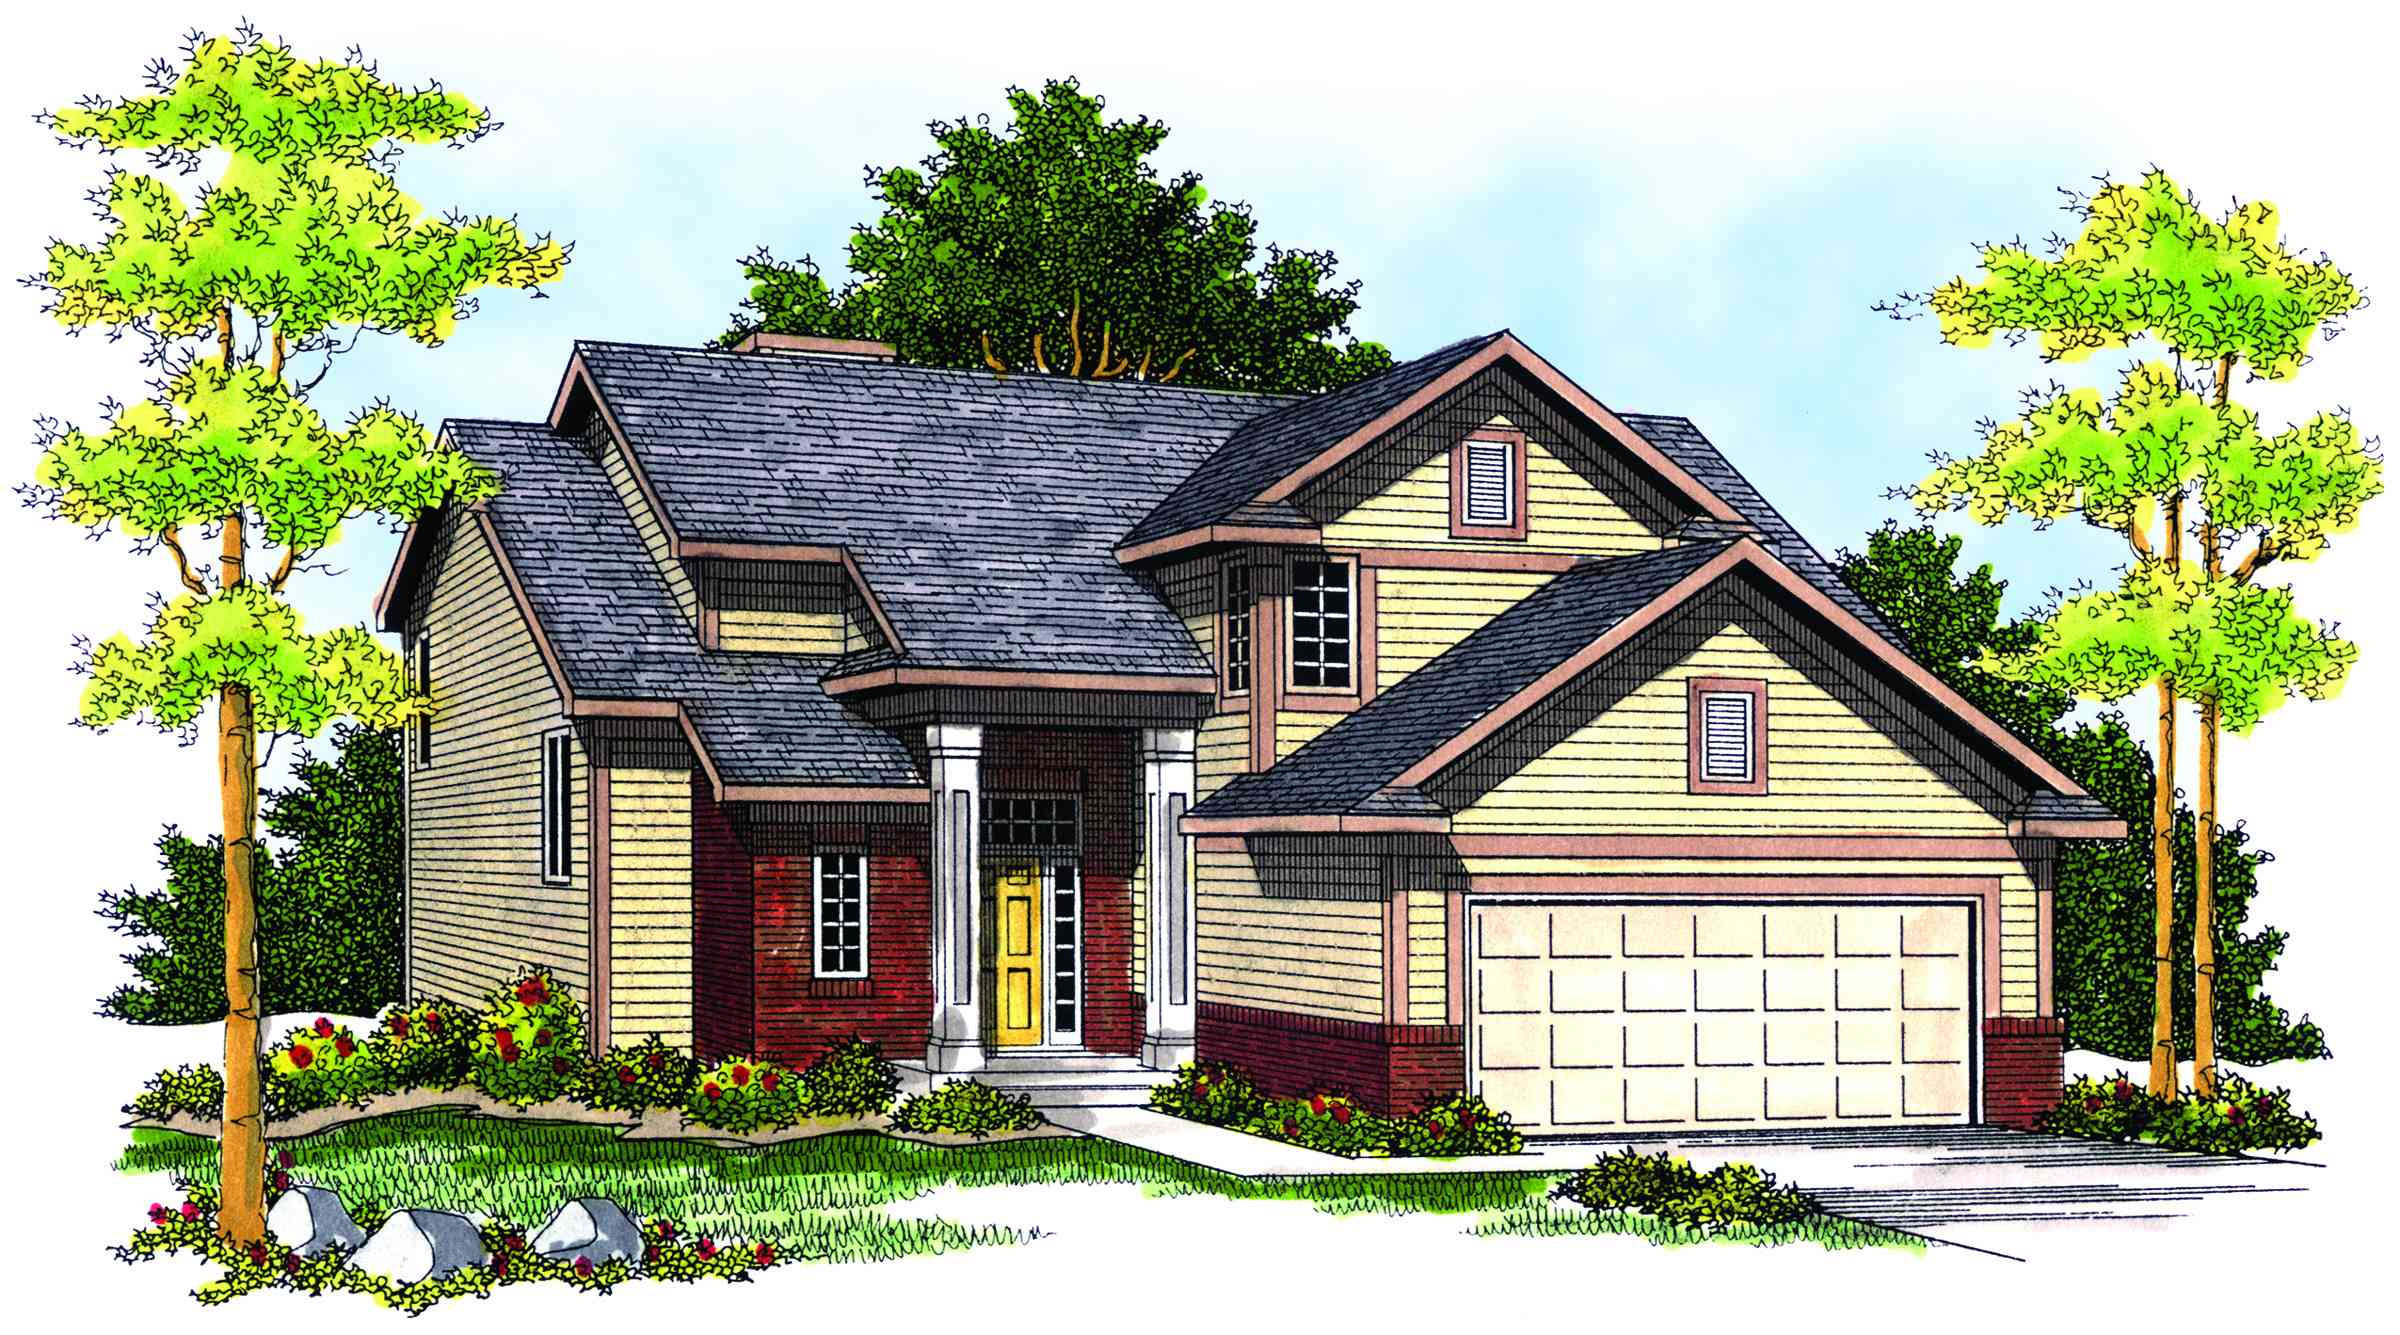 Transitional Home Plan With Contemporary Accents 89168ah